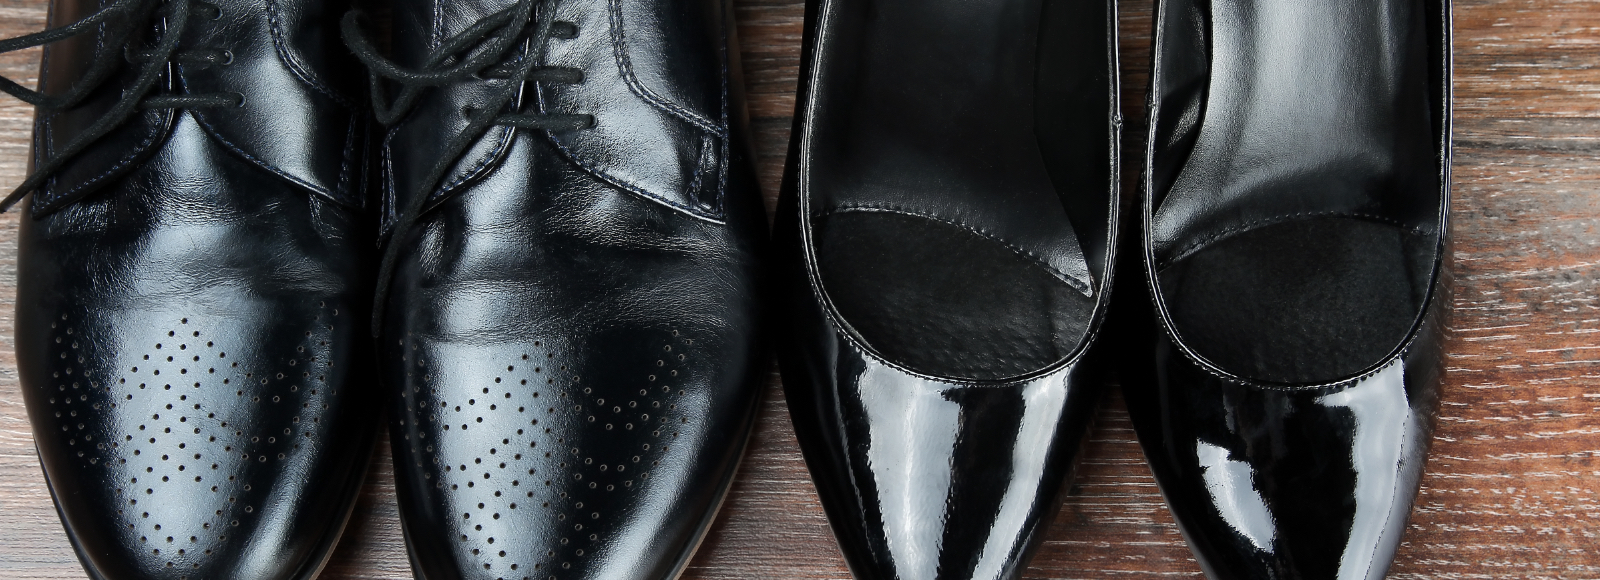 Close-up of a pair of shiny black leather dress shoes and heels after conditioning with Sof Sole® care products.